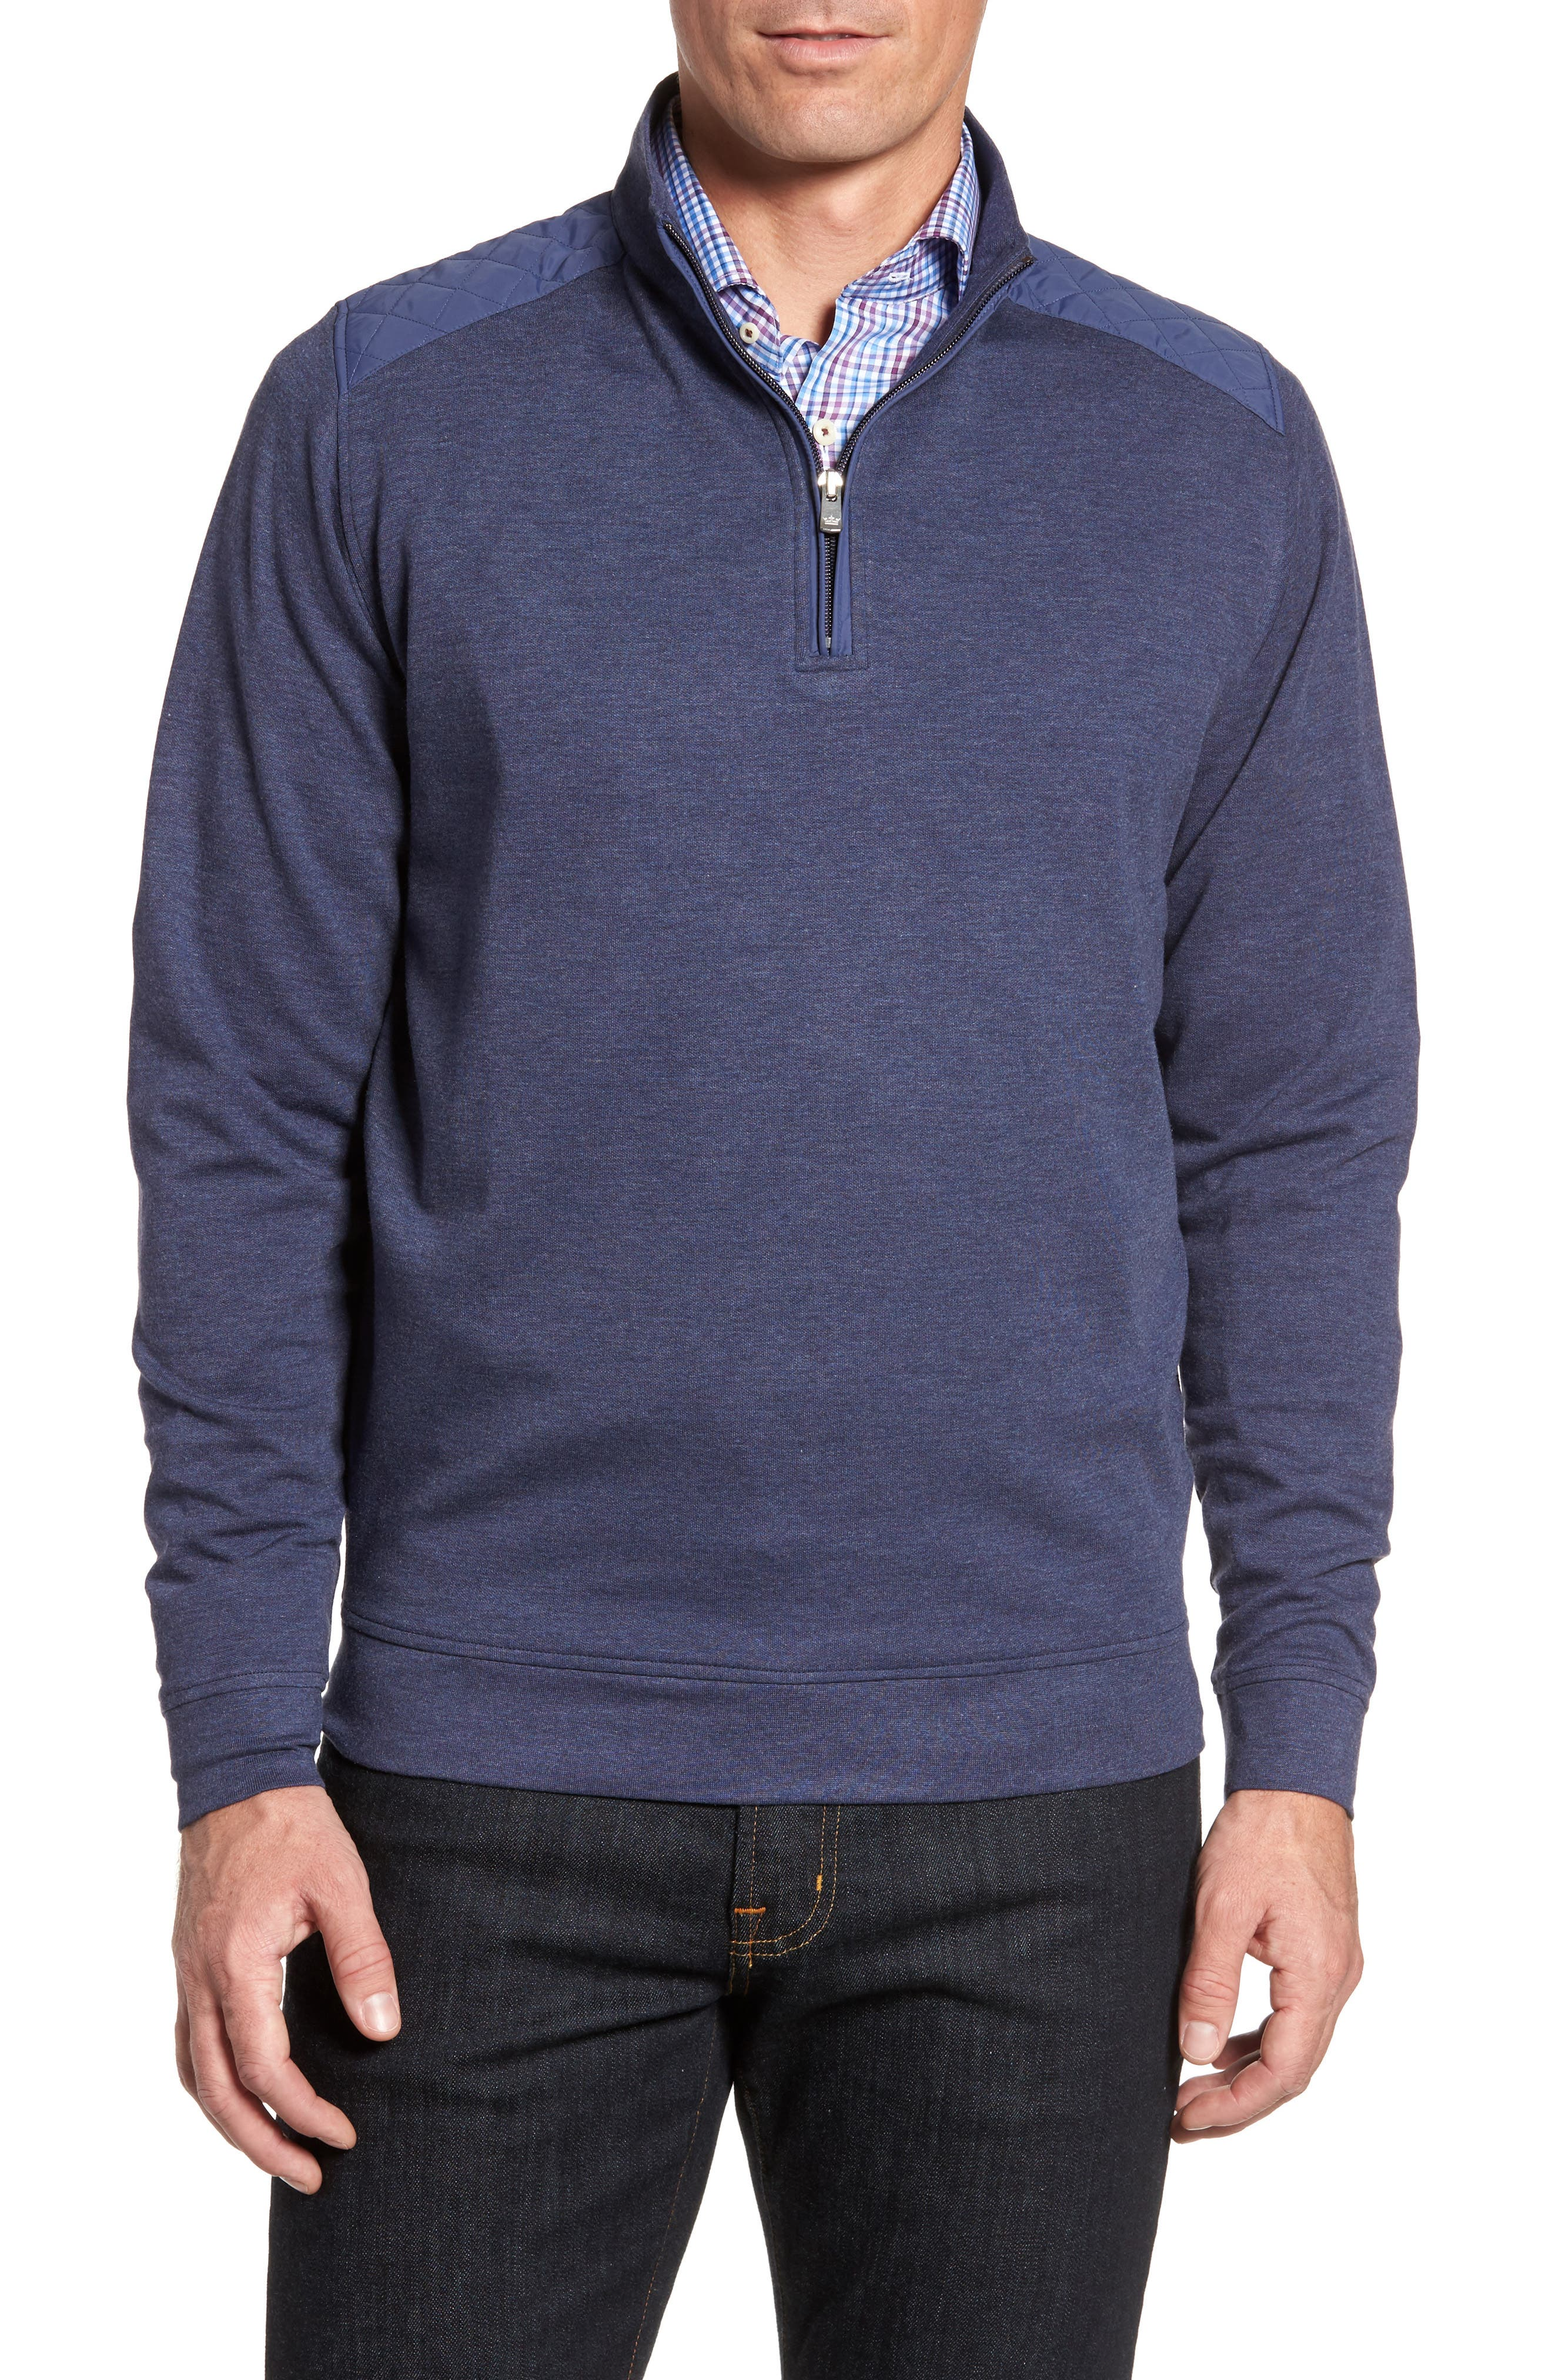 Boating Quarter Zip Pullover,                         Main,                         color, Yankee Blue